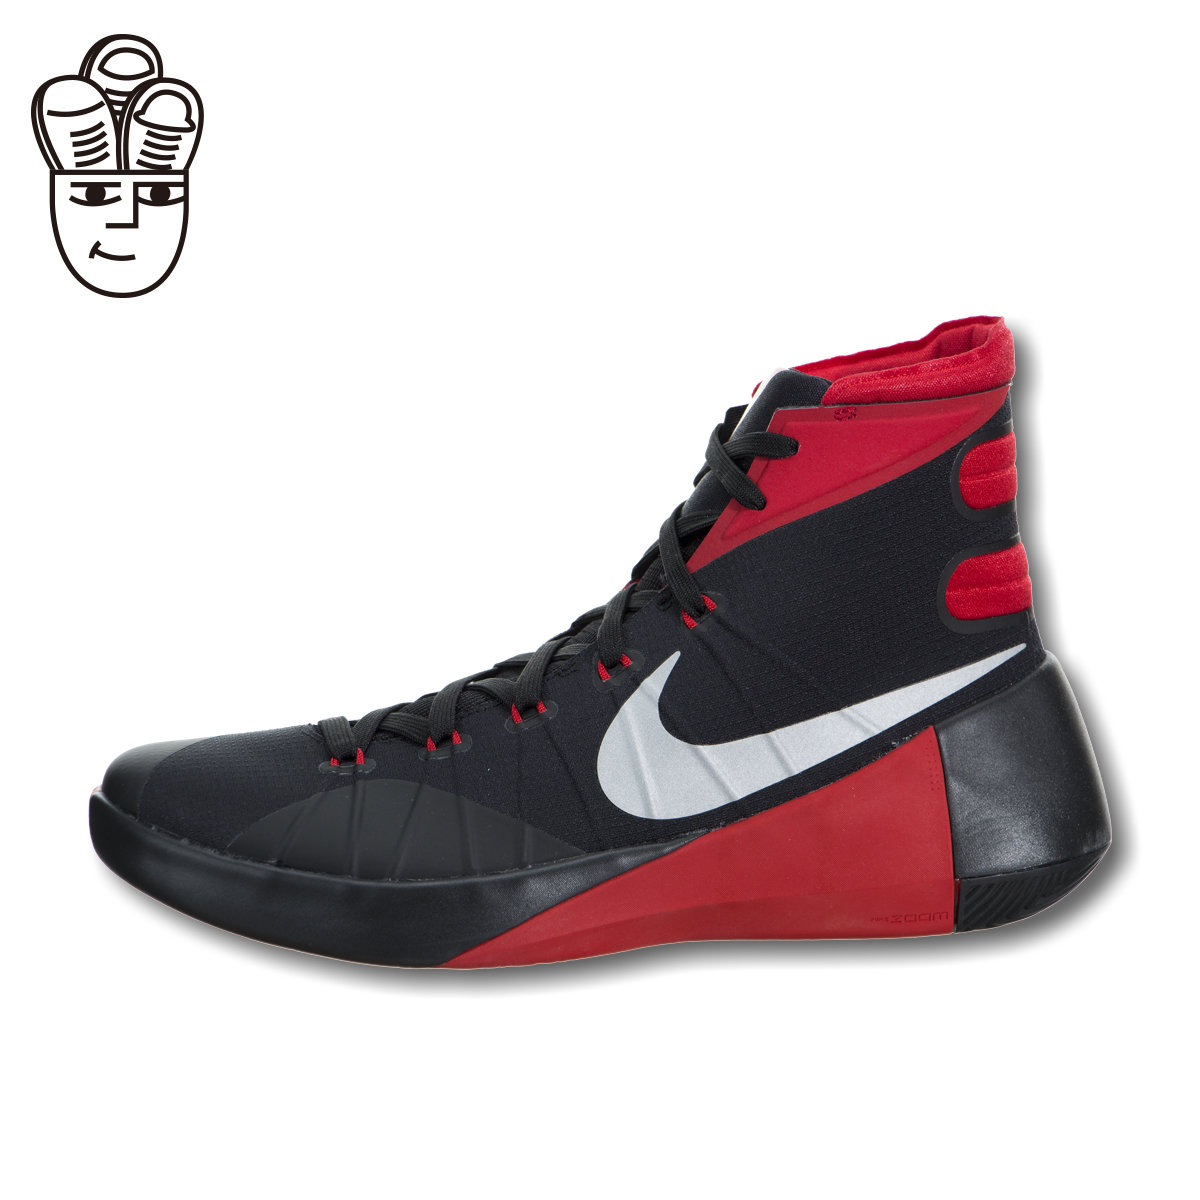 finest selection 9c85b bcd1e Get Quotations · Nike hyperdunk 2015 nike men s actual basketball shoes  sports shoes black and red color